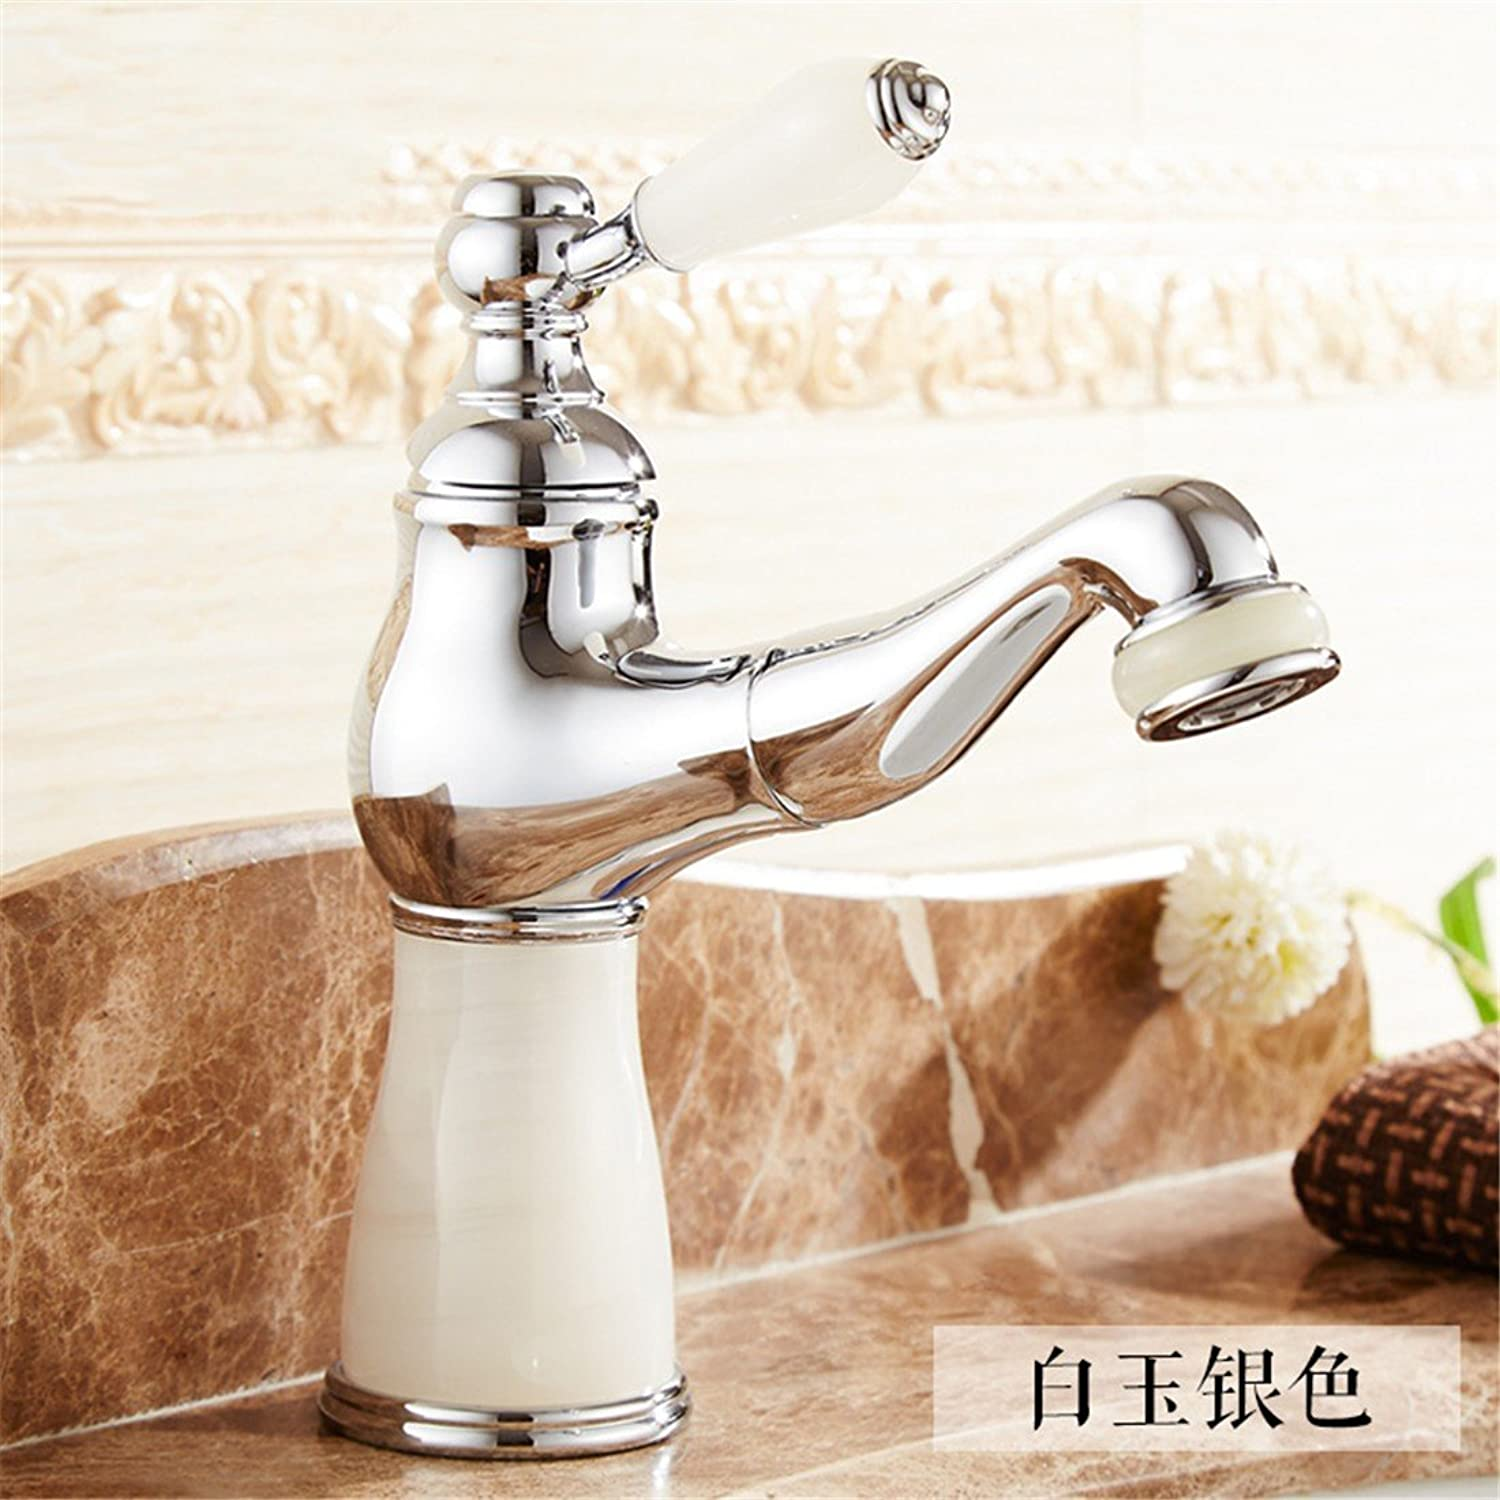 Fbict European Jade Faucet Copper Pull Faucet Bathroom Basin Single Hole Basin hot and Cold Bath Cabinet Faucet, Silver for Kitchen Bathroom Faucet Bid Tap